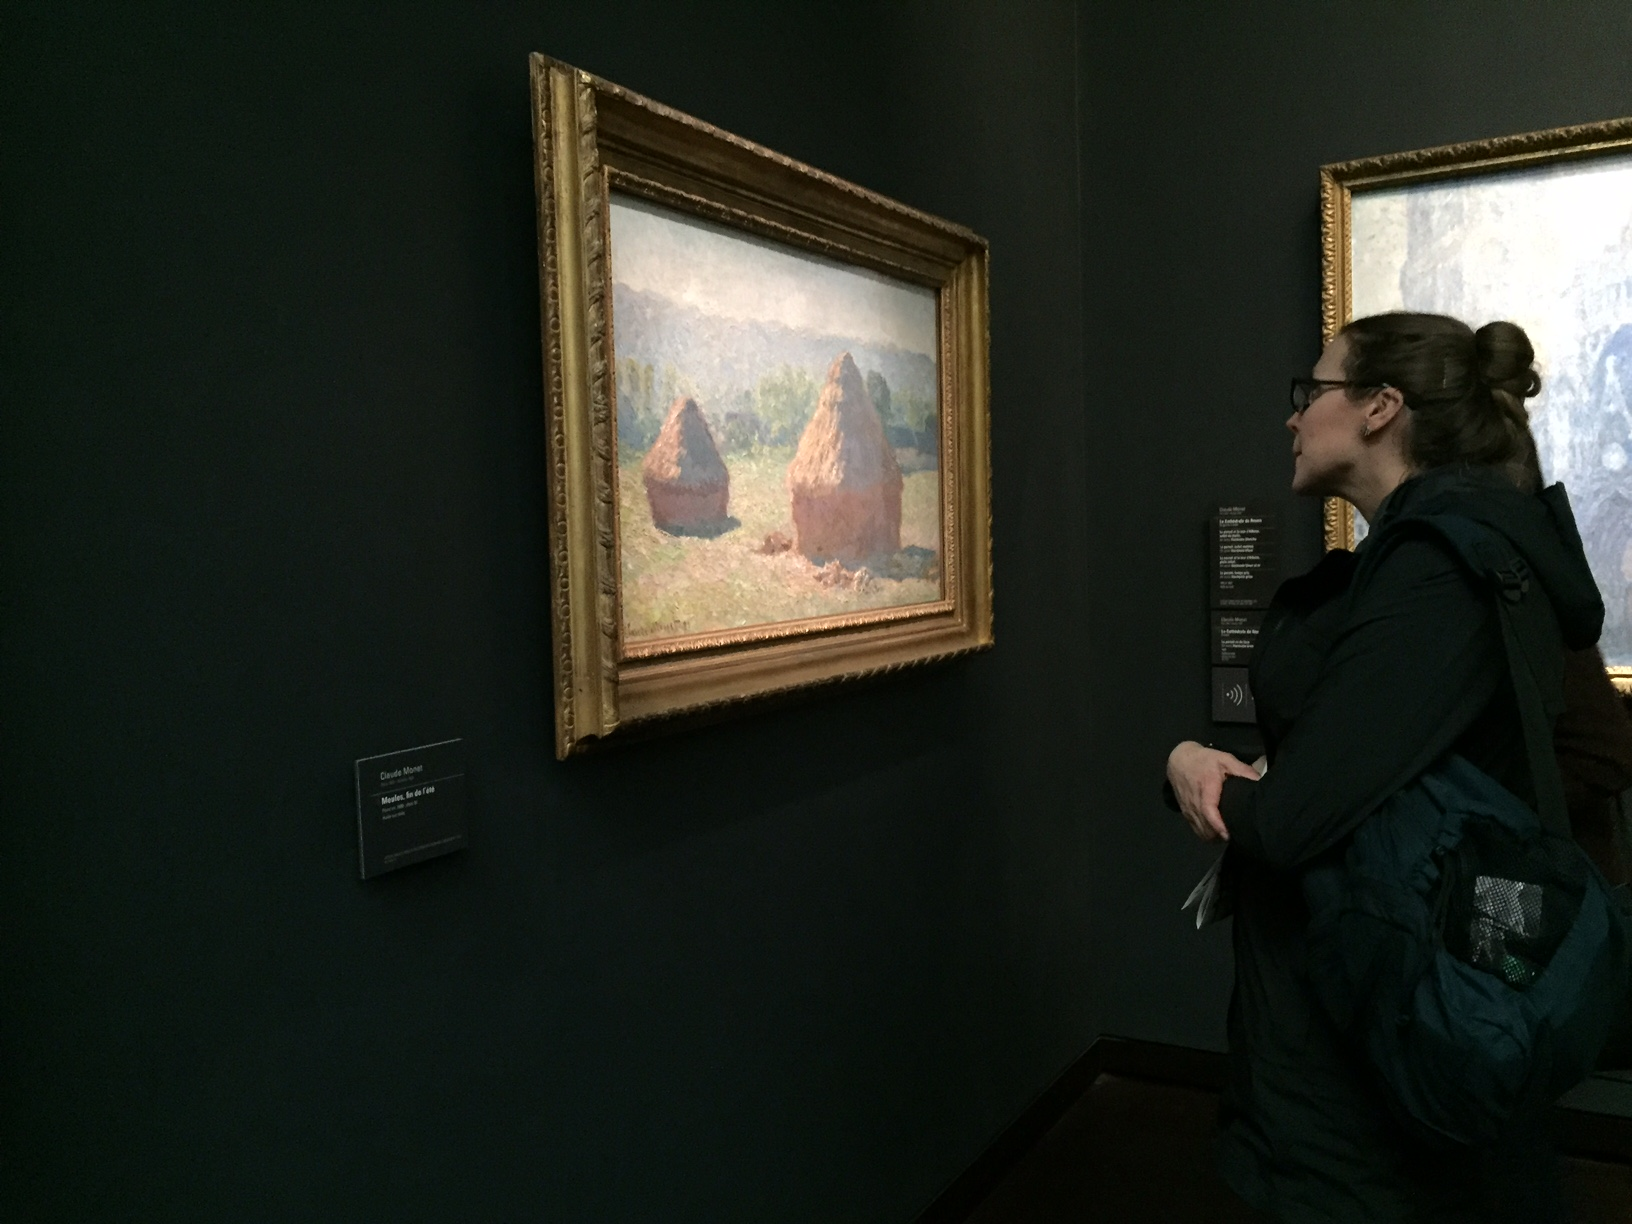 I had the opportunity to see a few of these haystack paintings at the  Orsay  in Paris a couple of years ago. They were stunning and I was oblivious to everything else, including this photo being taken!